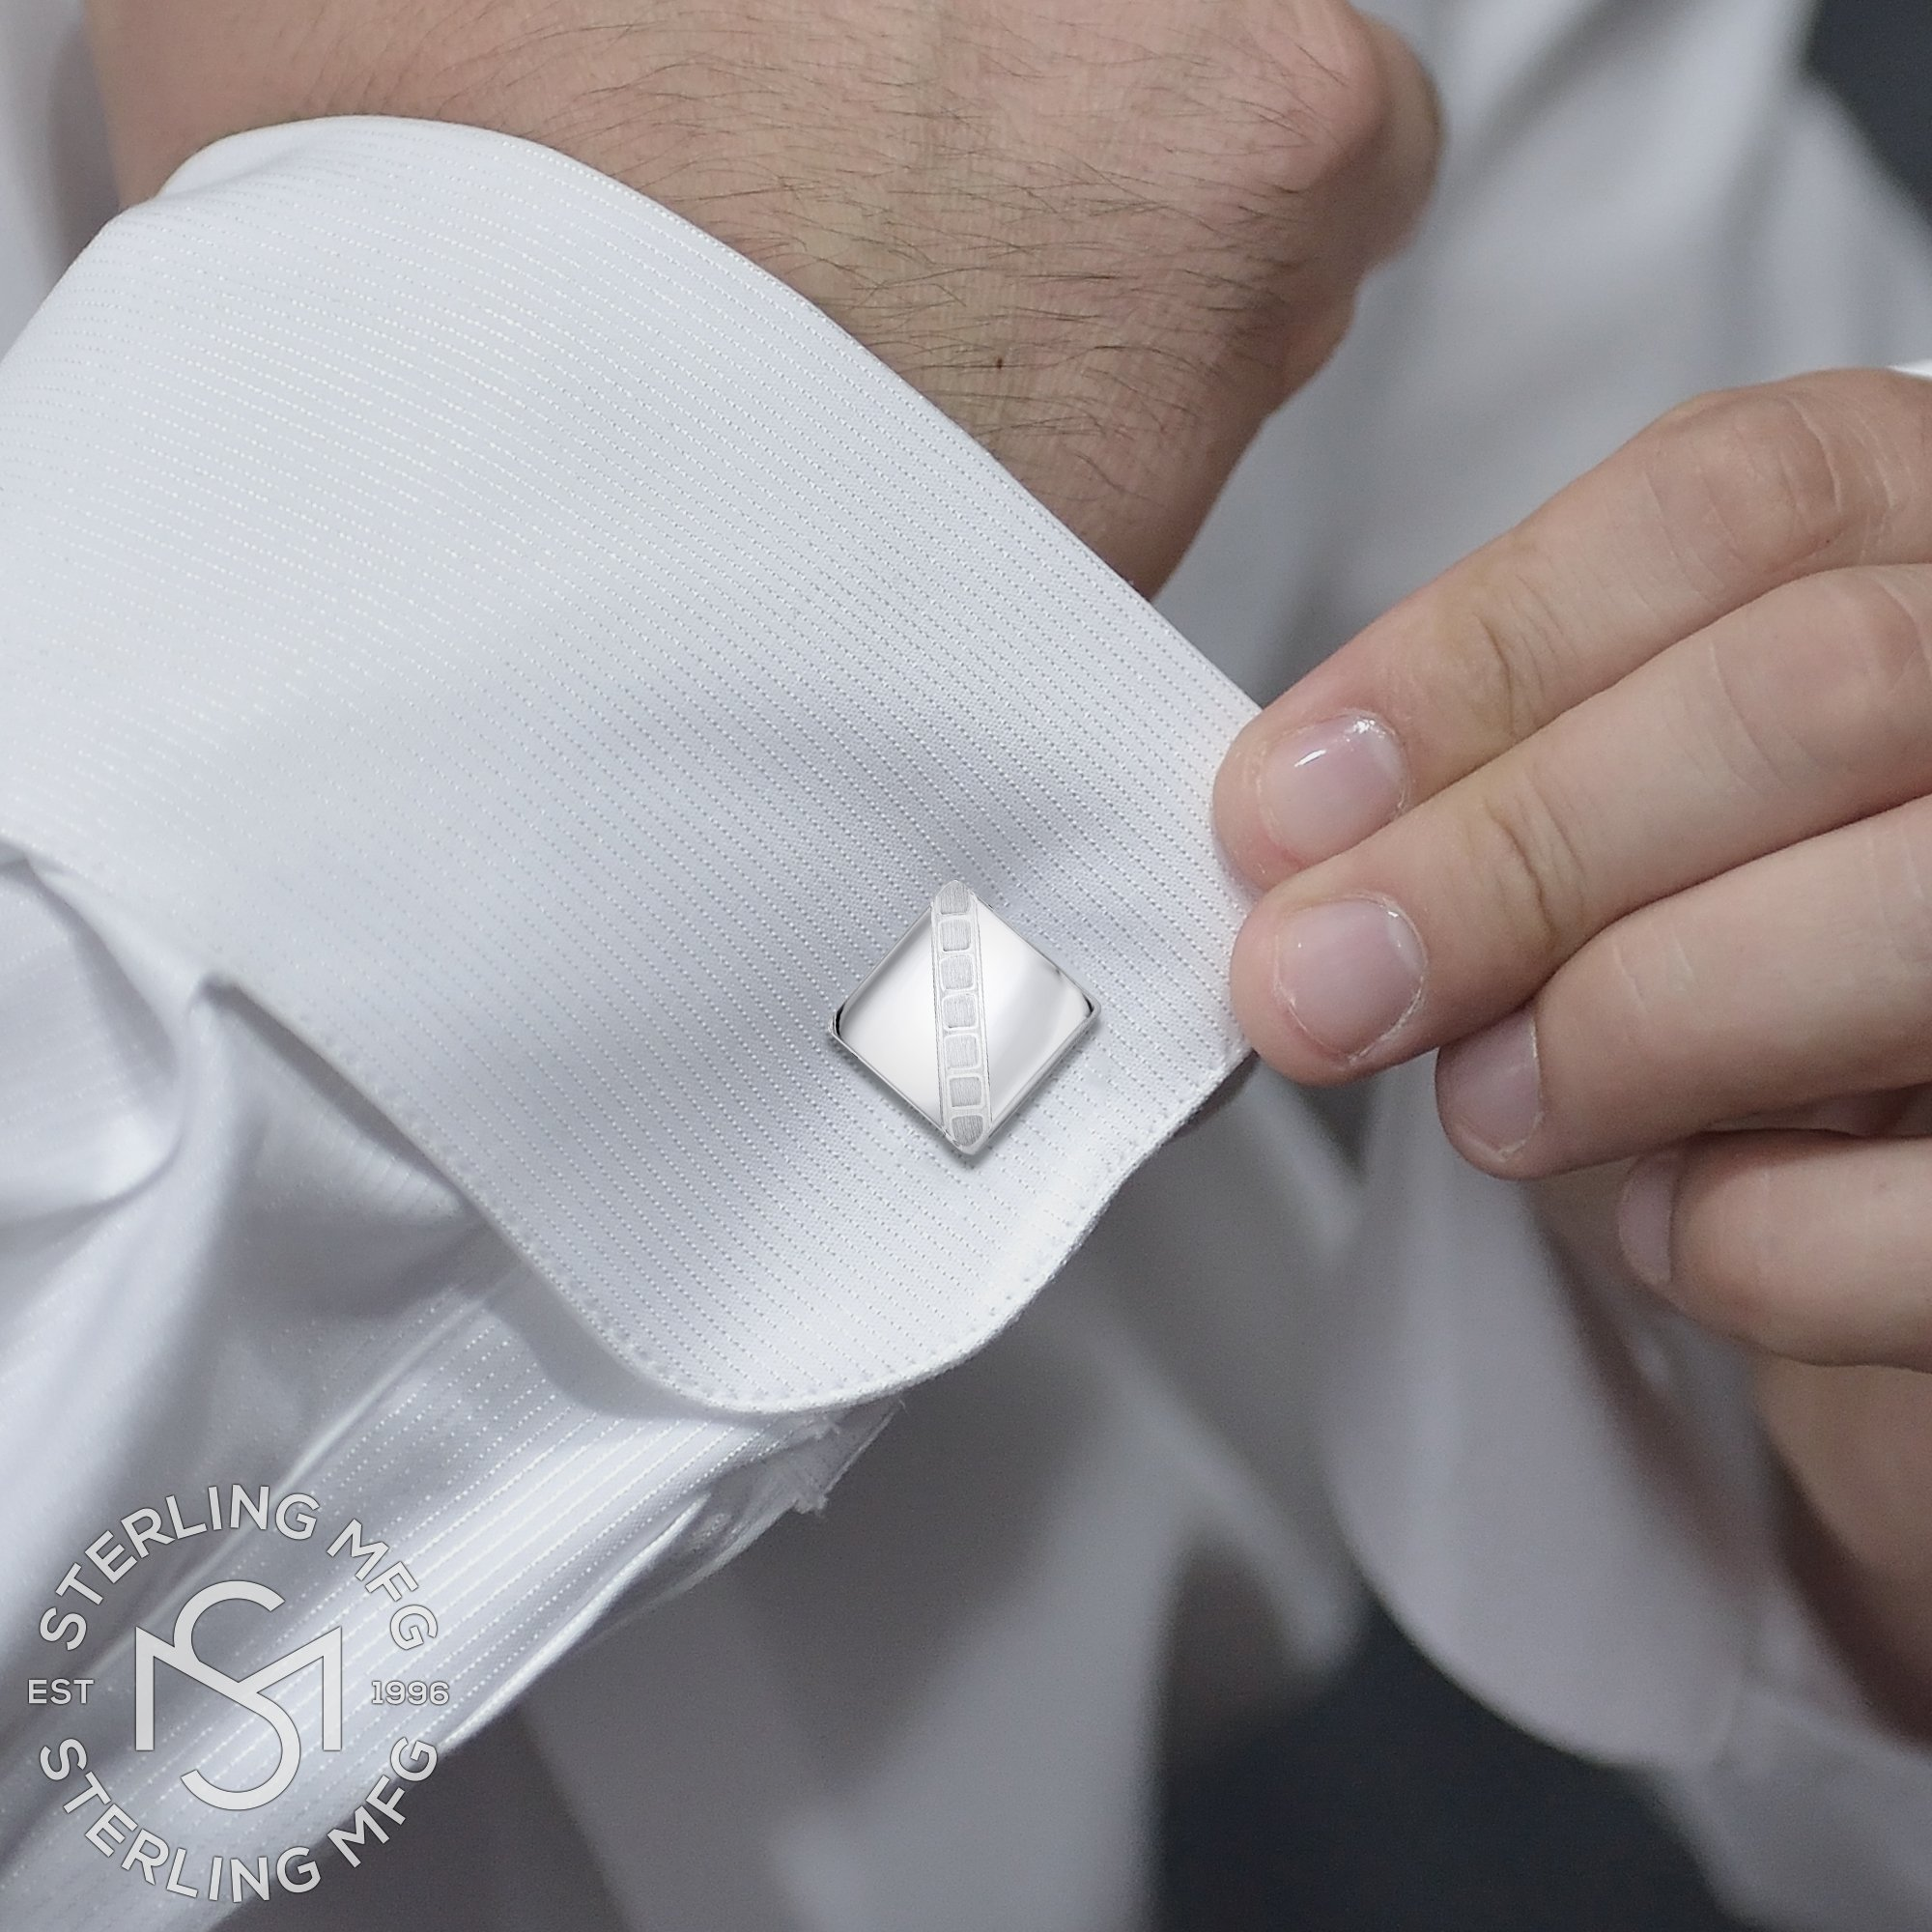 Sterling Manufacturers Men's Sterling Silver .925 Square Cufflinks with Satin Finish Check Accents, Engravable, 14mm. By by Sterling Manufacturers (Image #4)